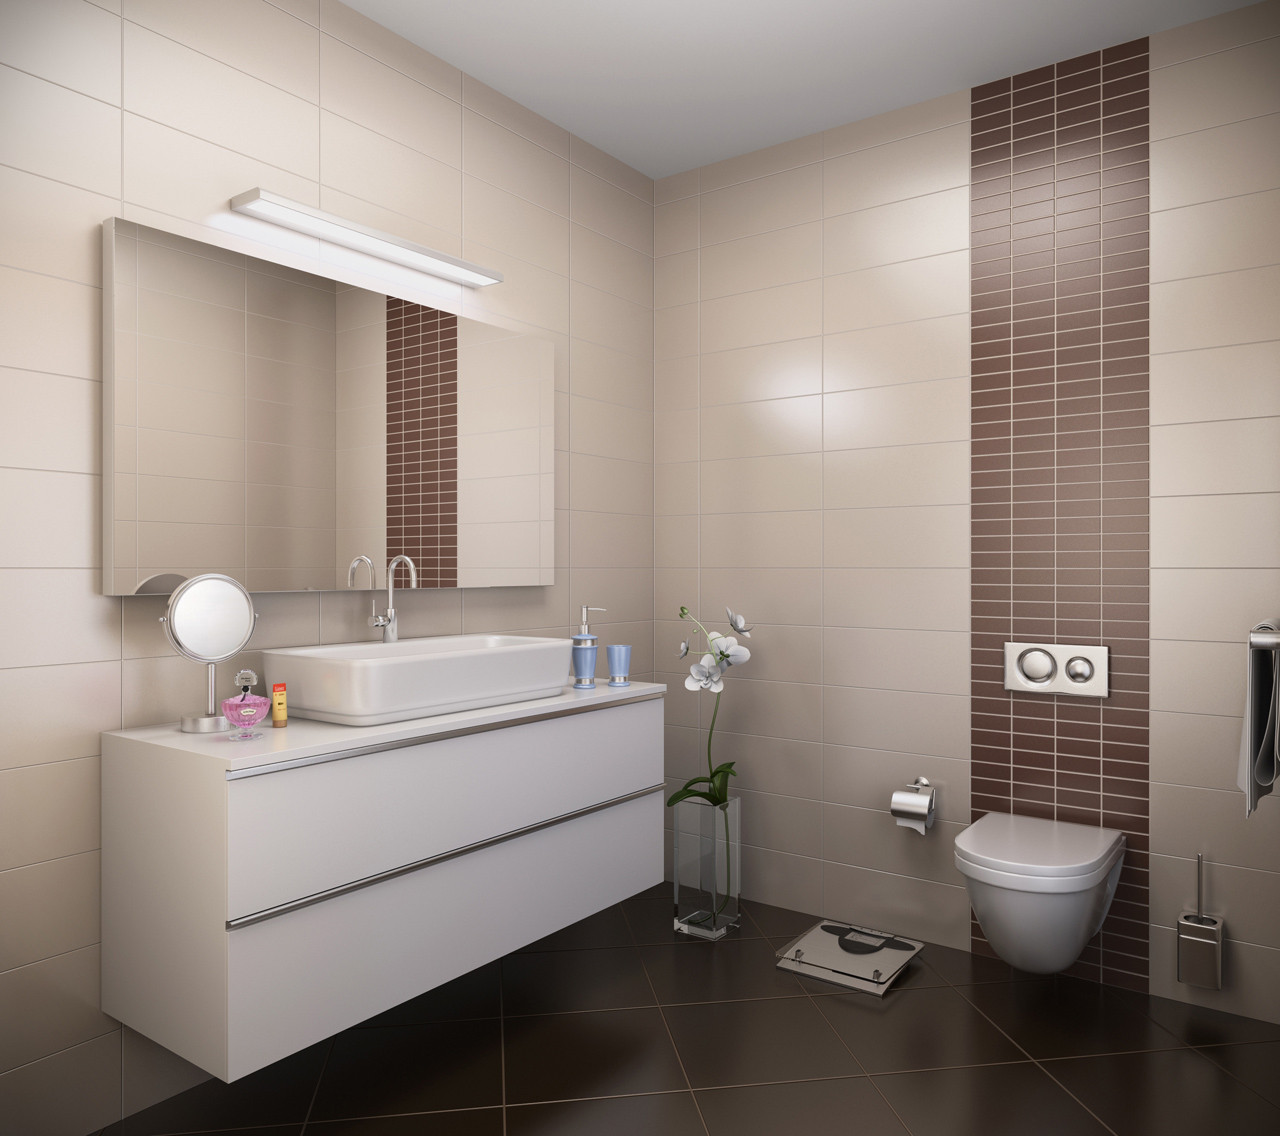 3ds max bathroom interior for Design your bathroom 3d